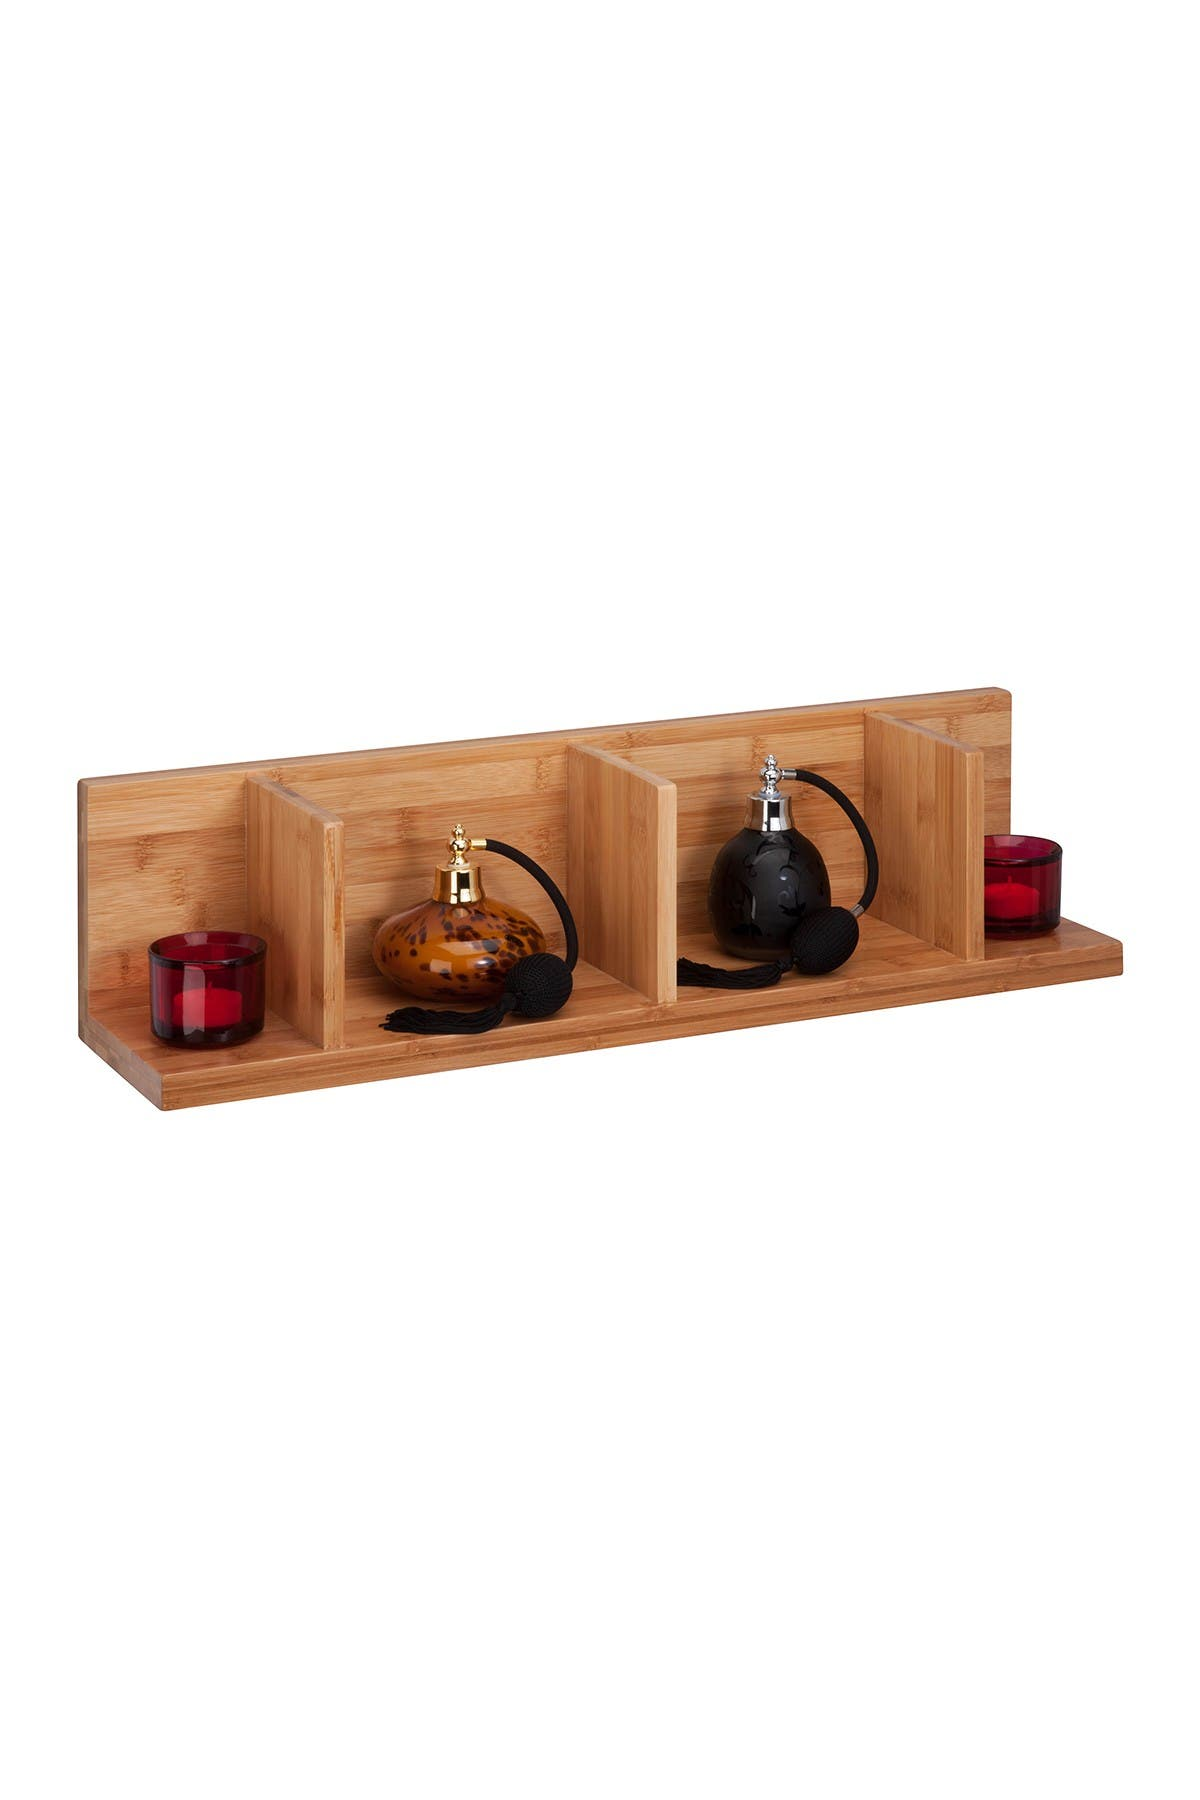 Image of Honey-Can-Do Large Sectioned Bamboo Wall Shelf